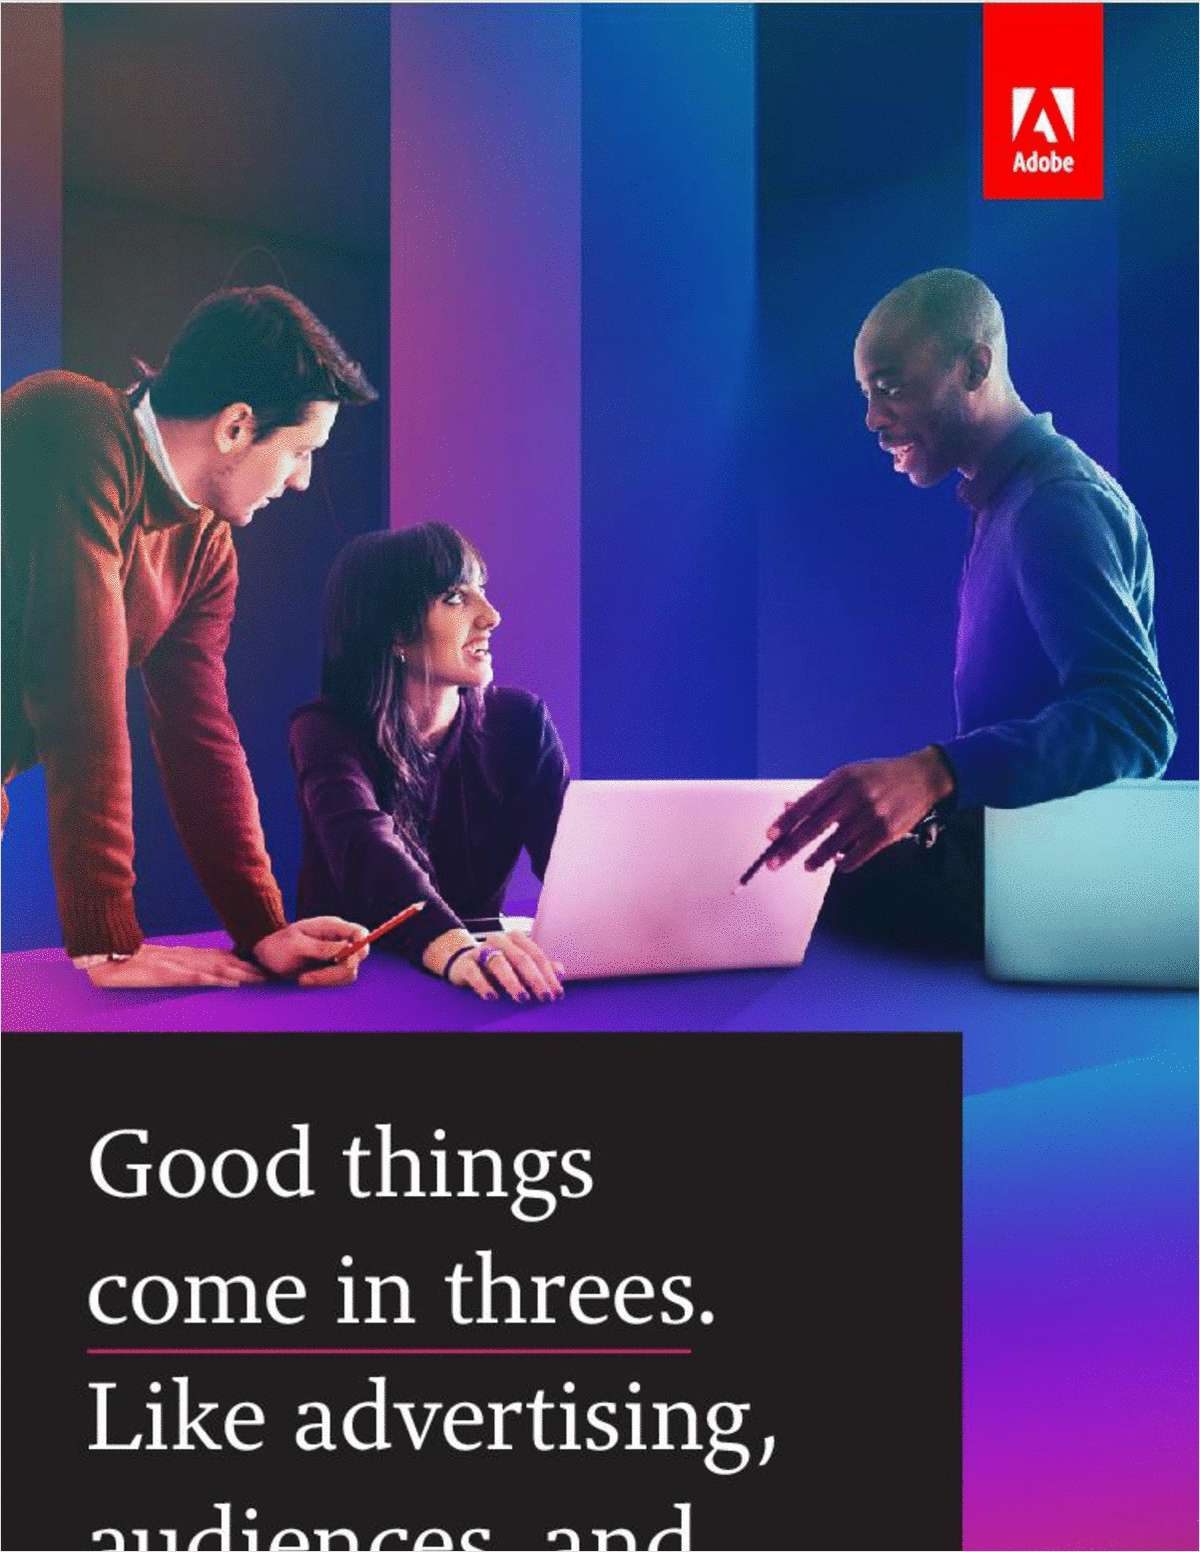 Good Things Come in Threes: Like Advertising, Audiences, and Analytics